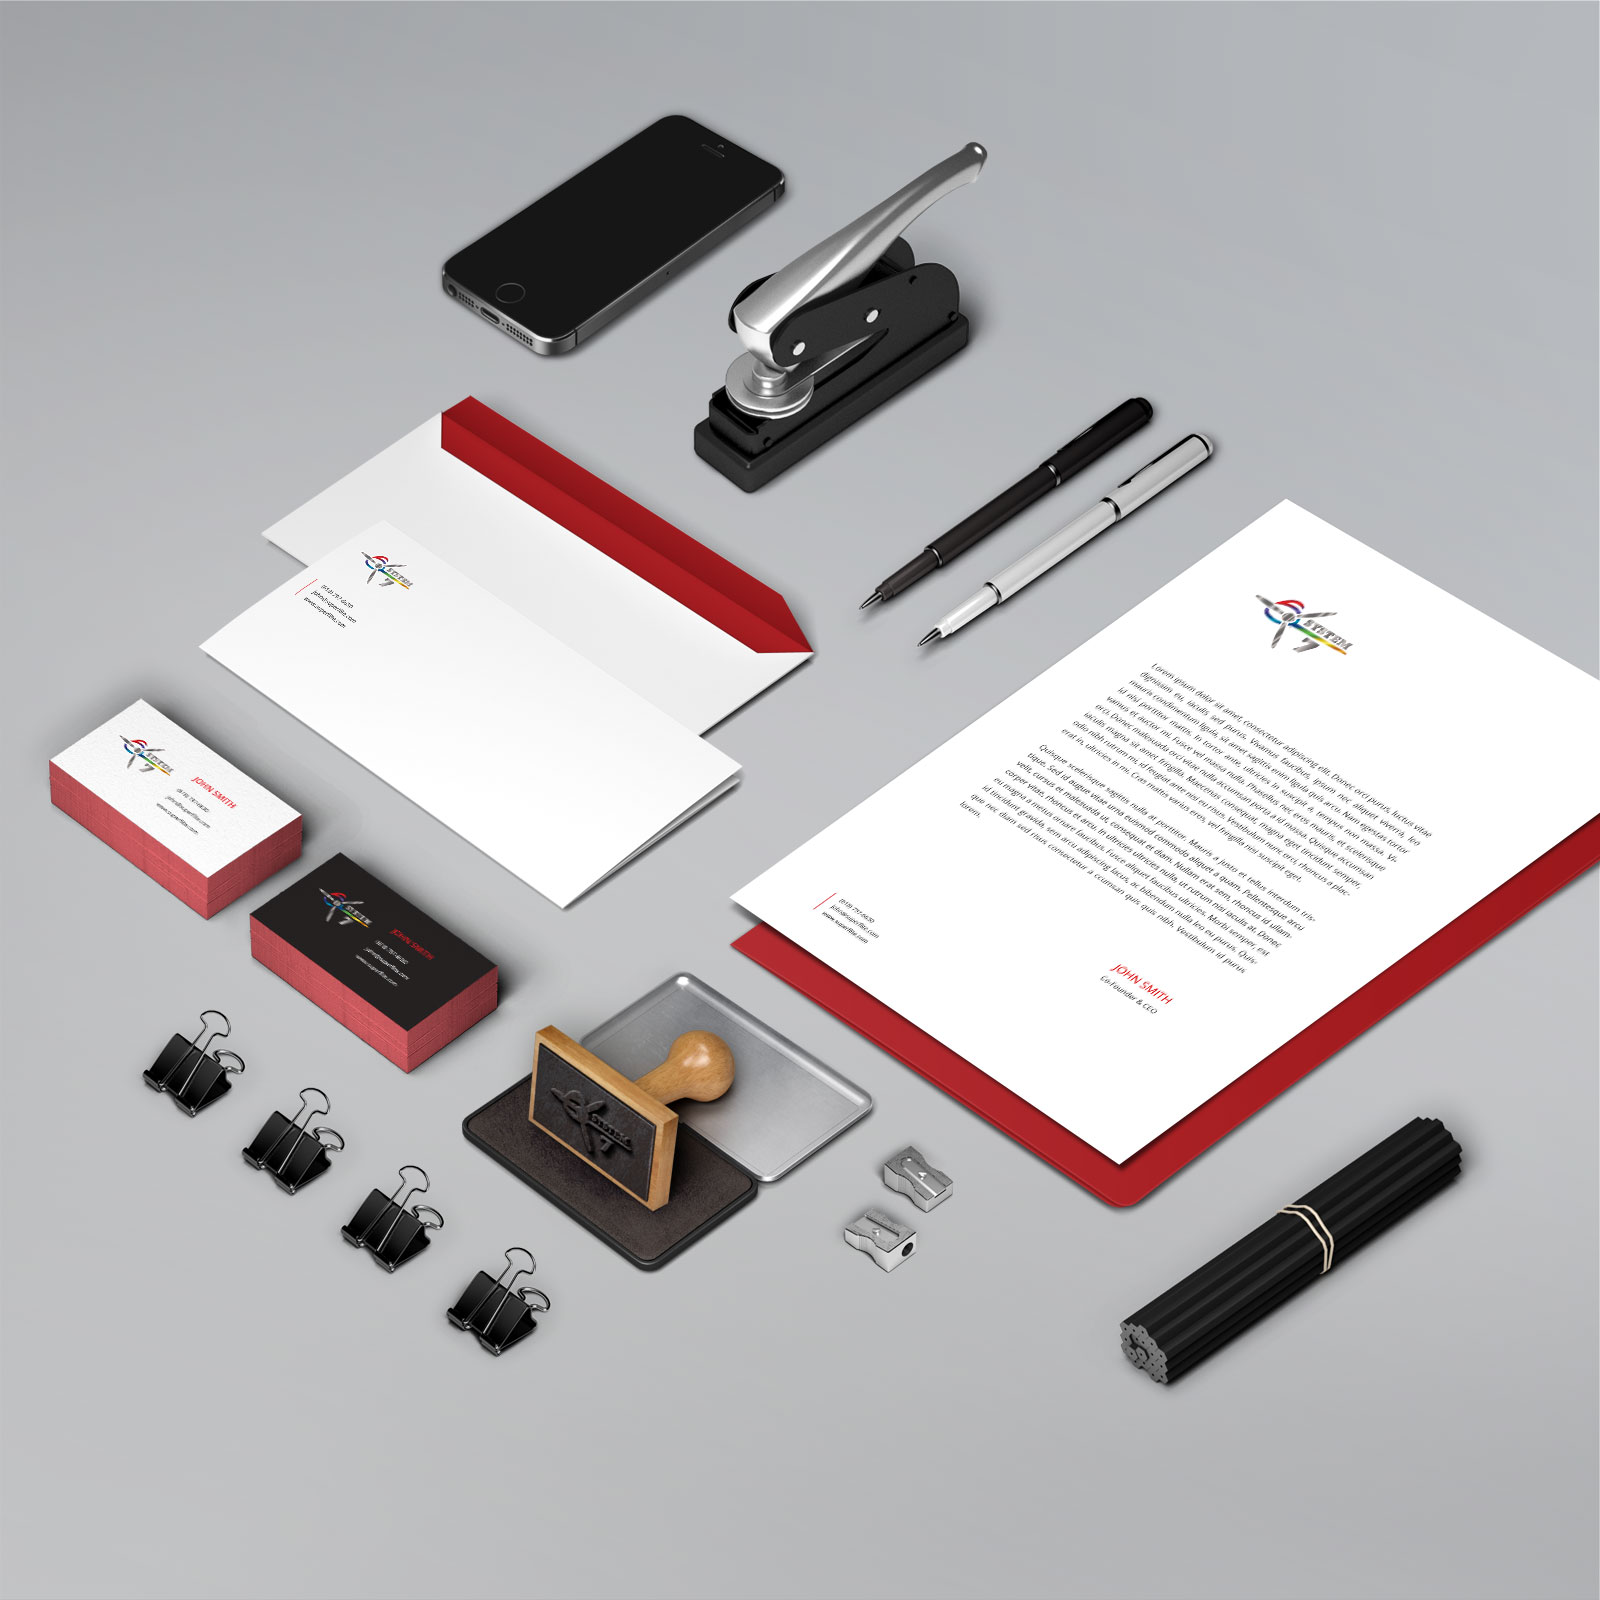 Image of branded corporate stationery created for the Superflite System 7 aircraft covering brand